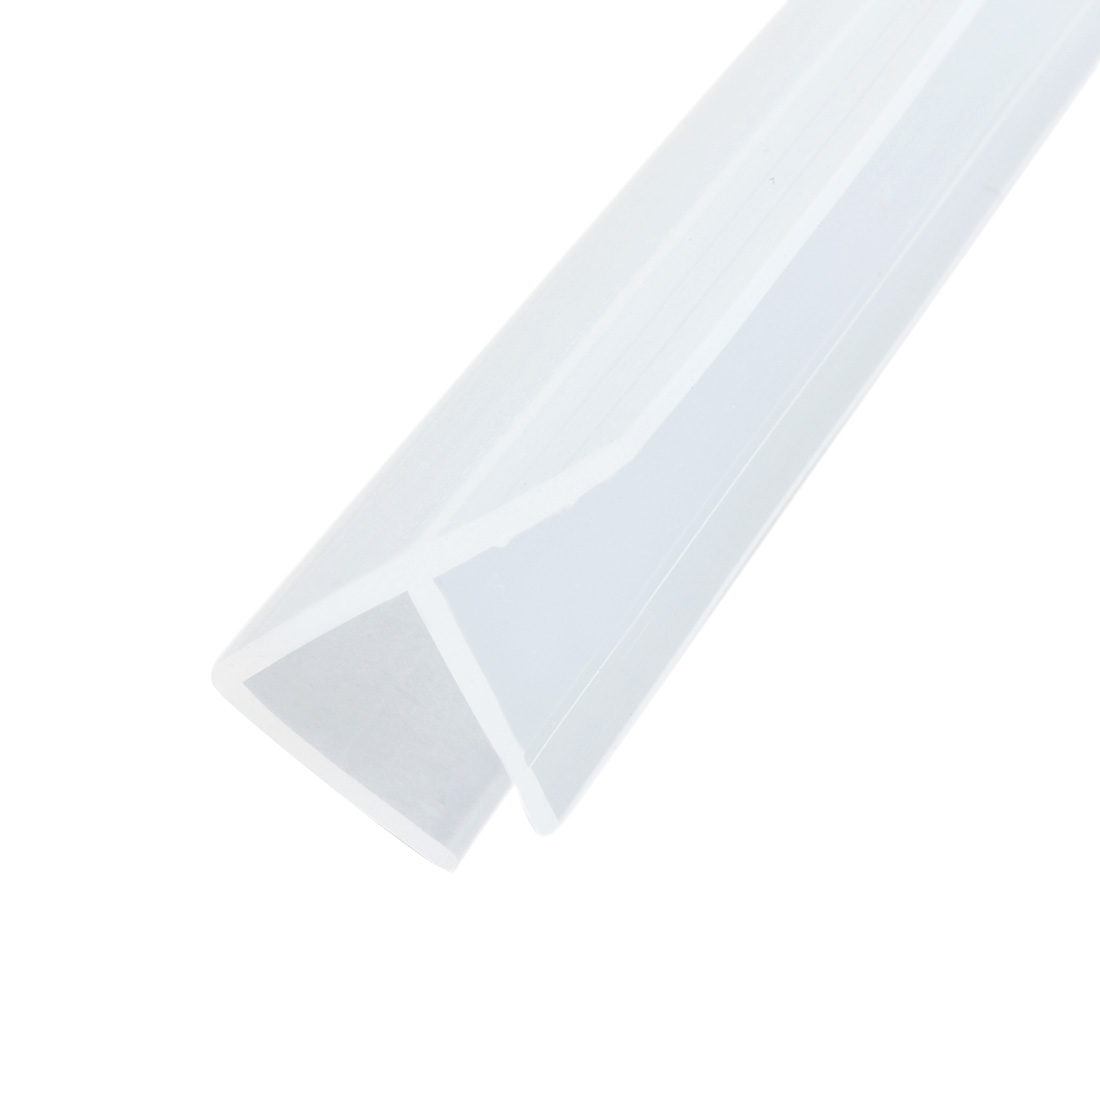 39-inch F Shaped Frameless Window Shower Door Seal Clear for 15/32-inch Glass